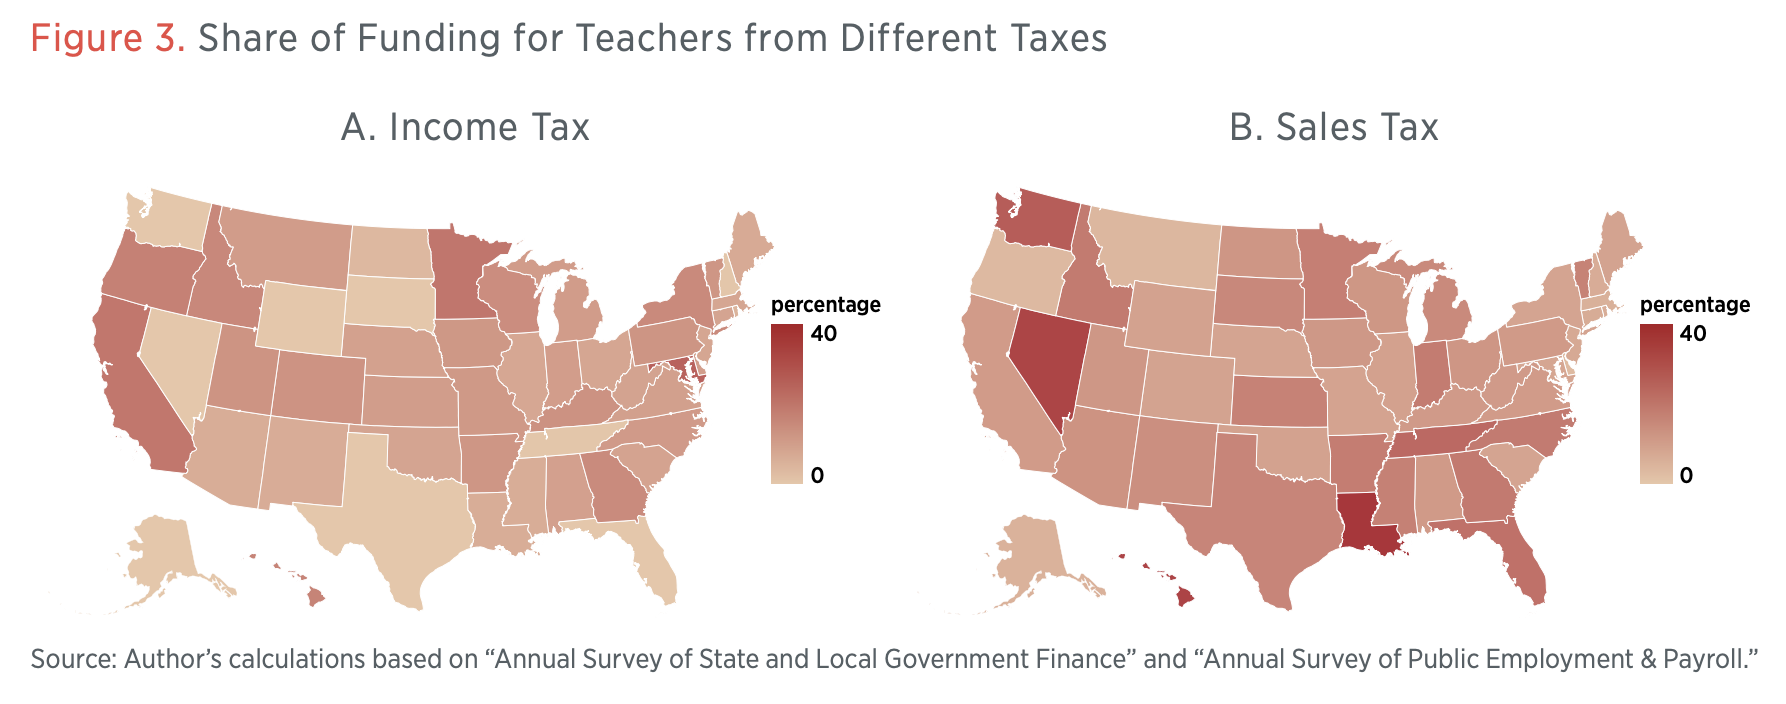 Figure 3. Share of Funding for Teachers from Different Taxes